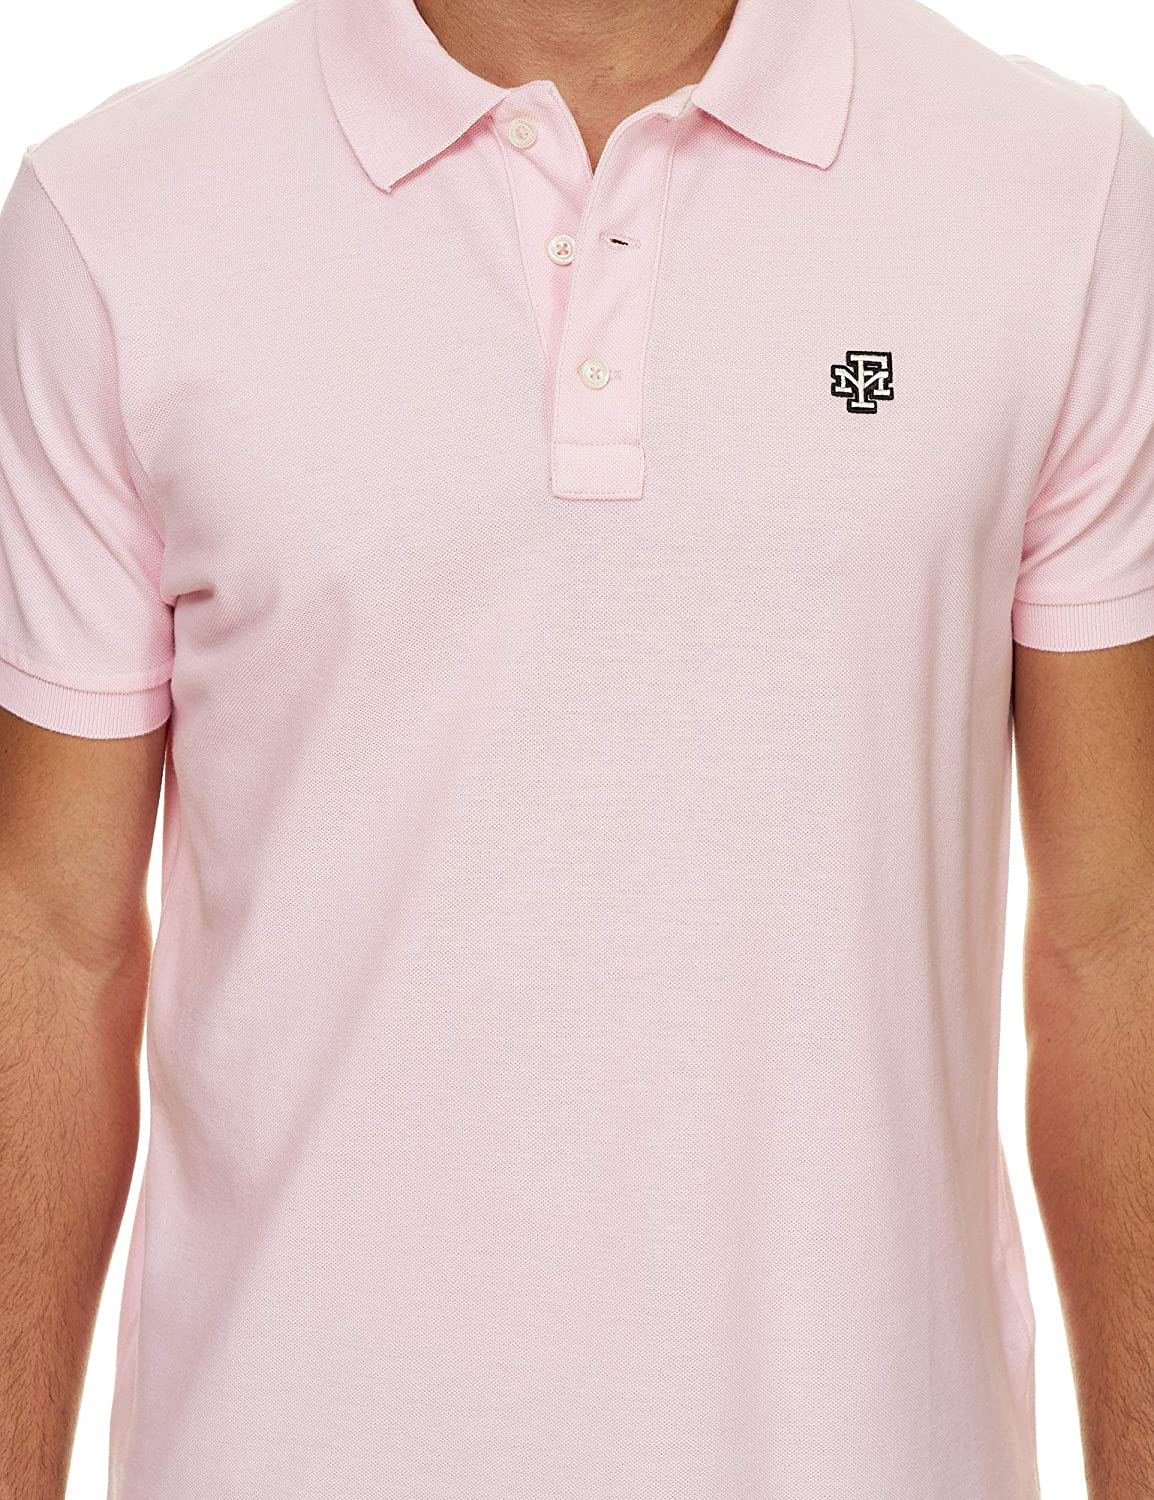 Franklin & Marshall Mens Embroidered Logo Polo T-Shirt Pink in ...